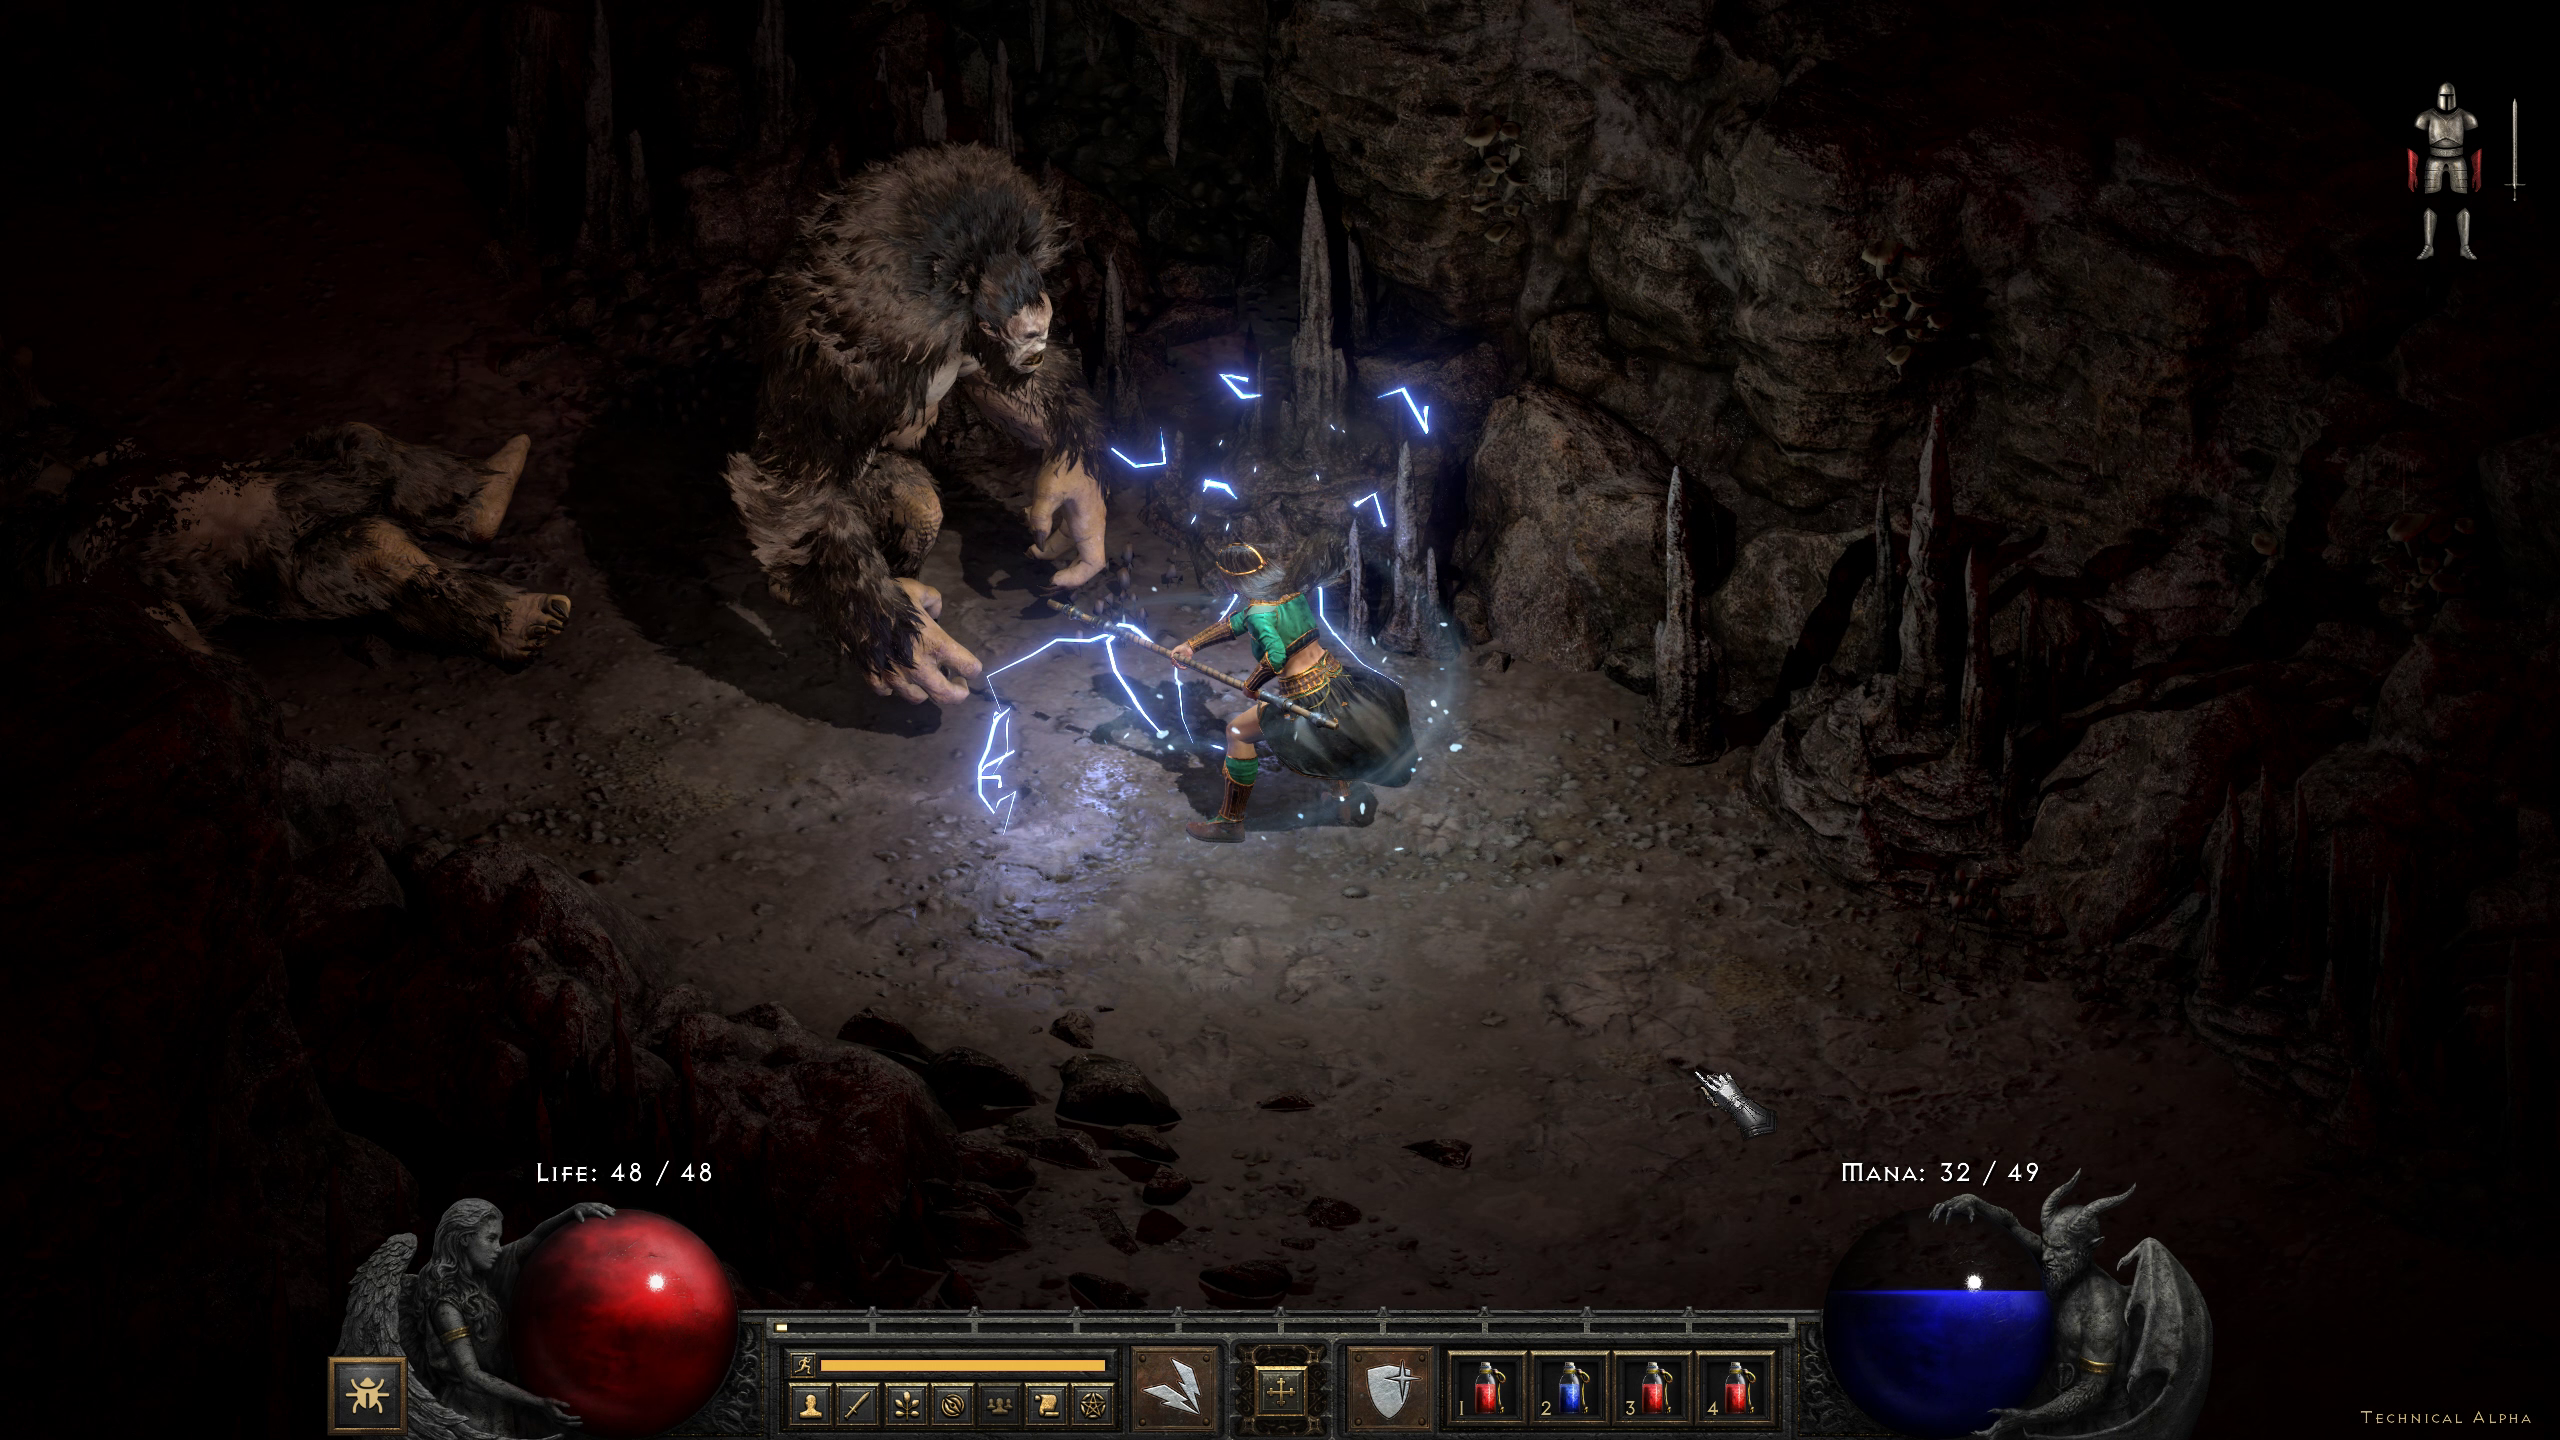 Diablo 2: Resurrected players used old mods to access hidden classes